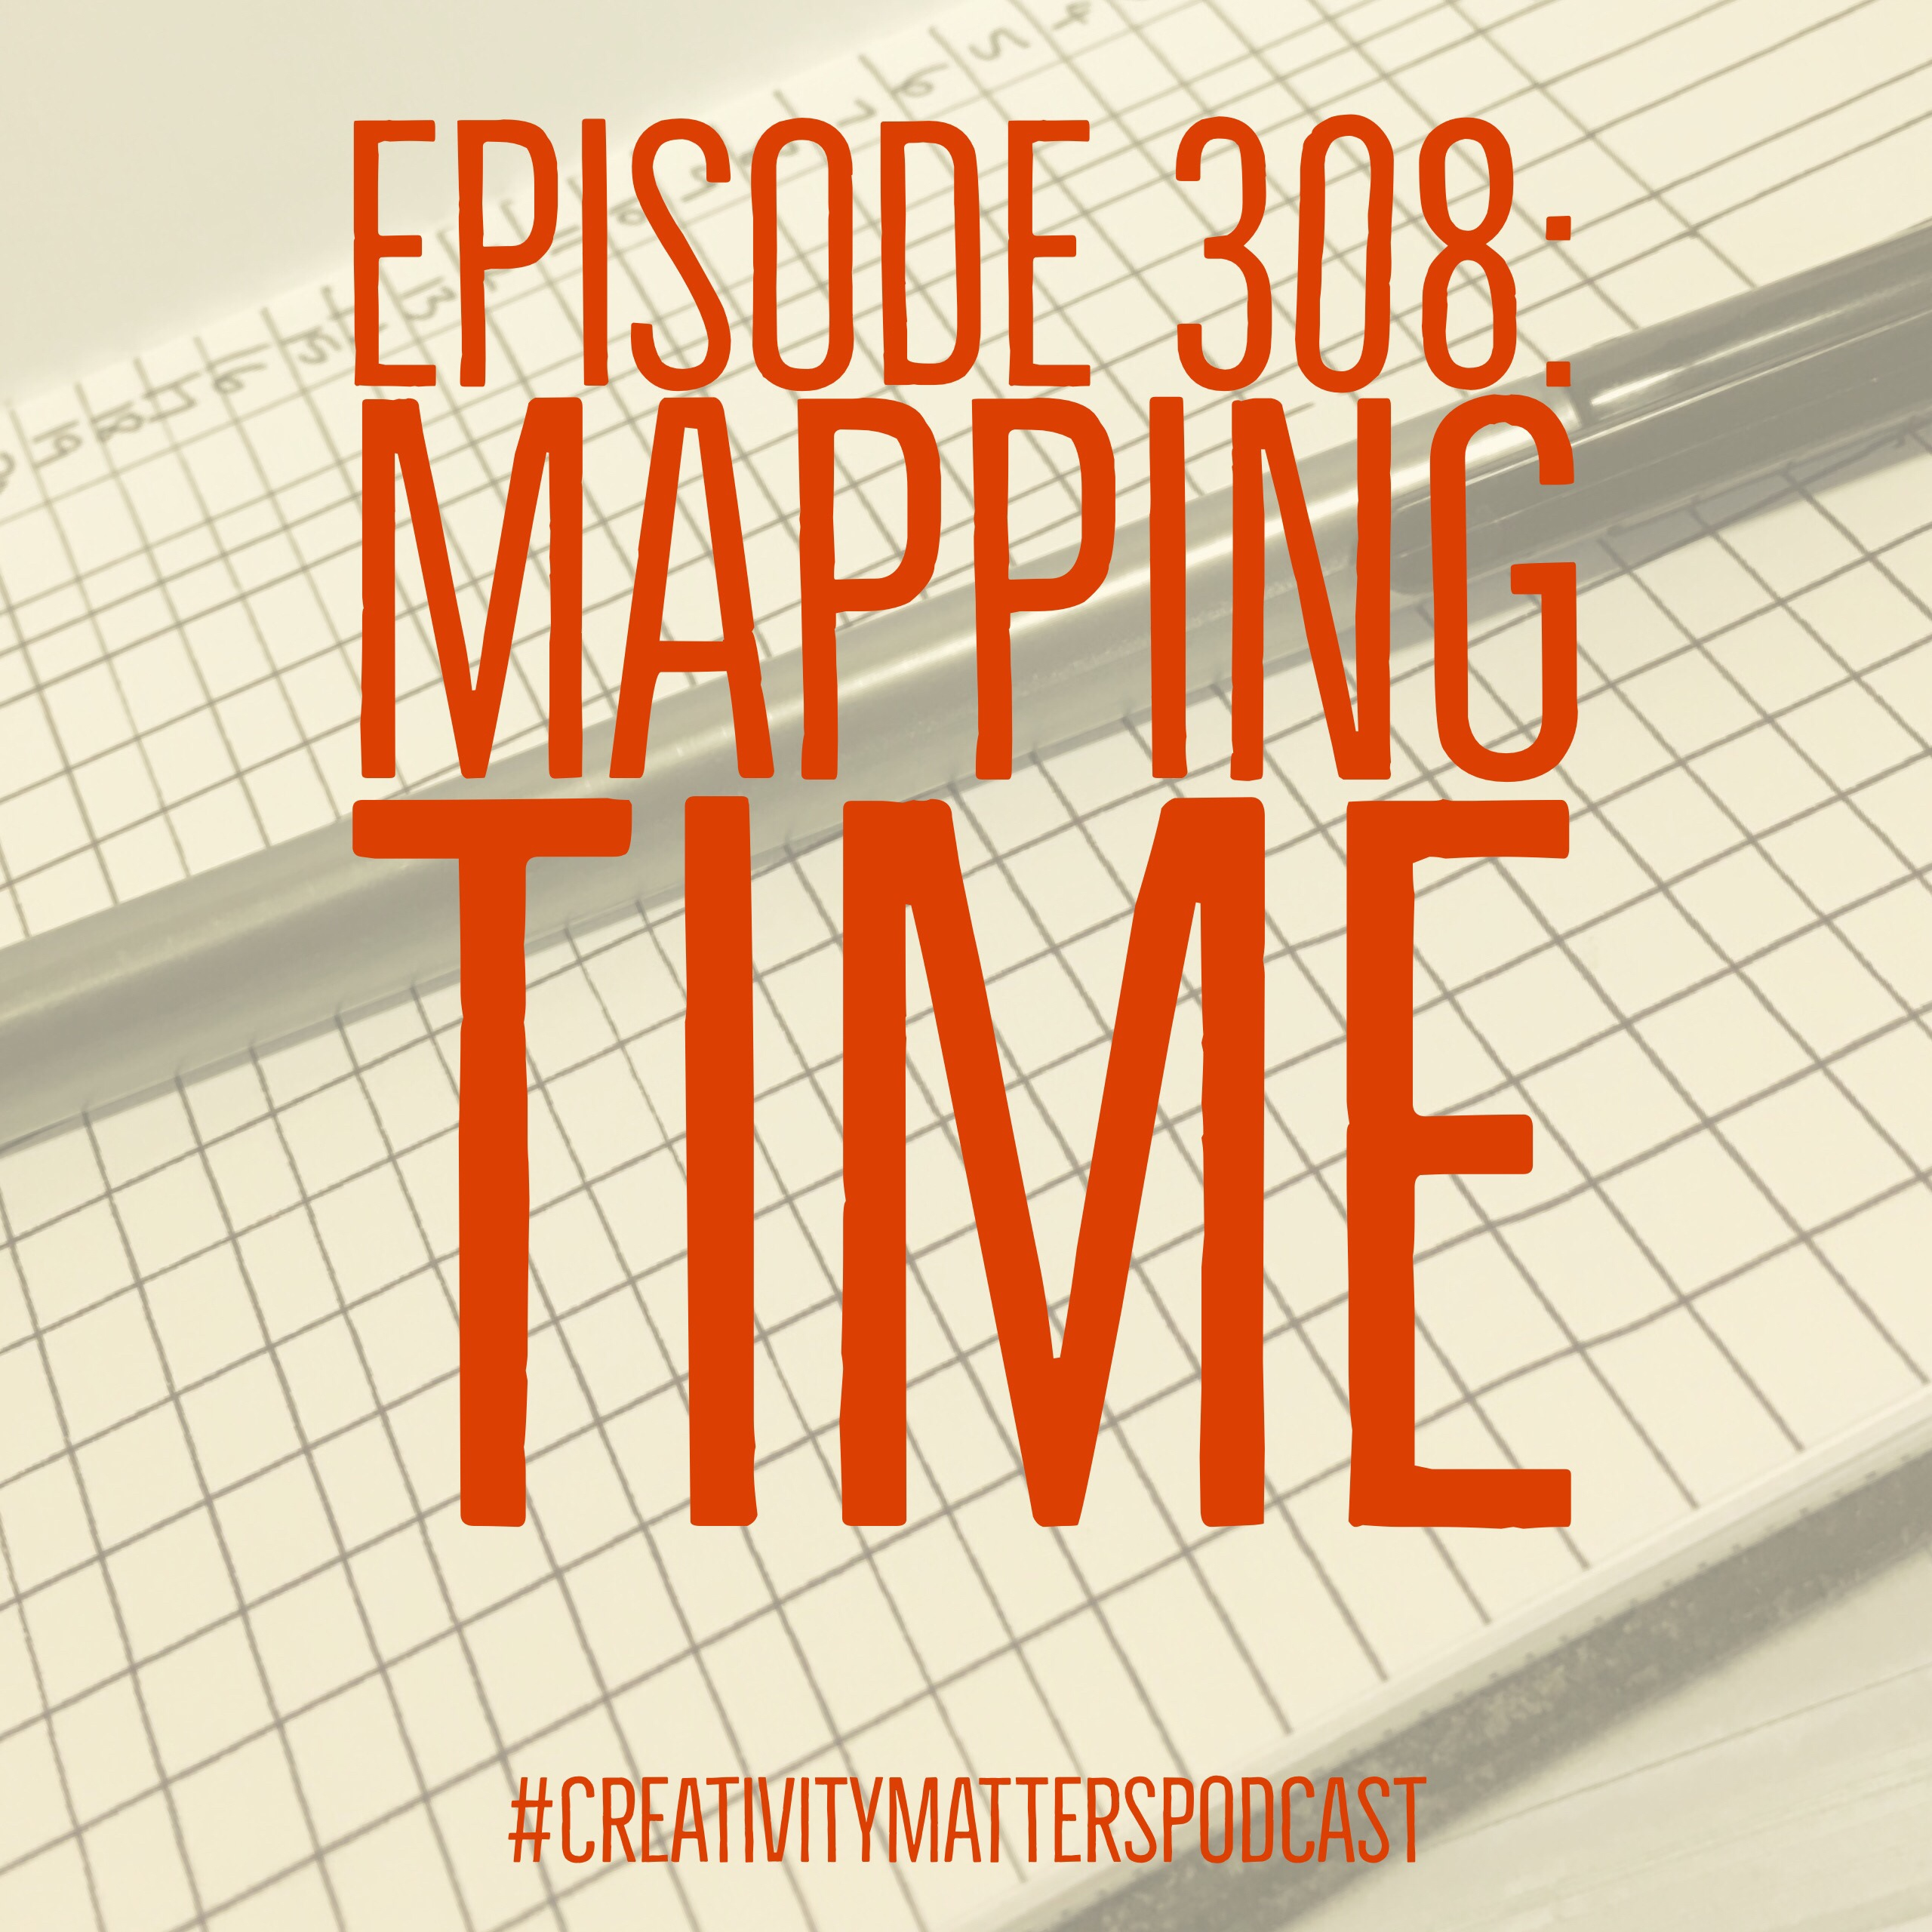 Episode 308: Mapping Time